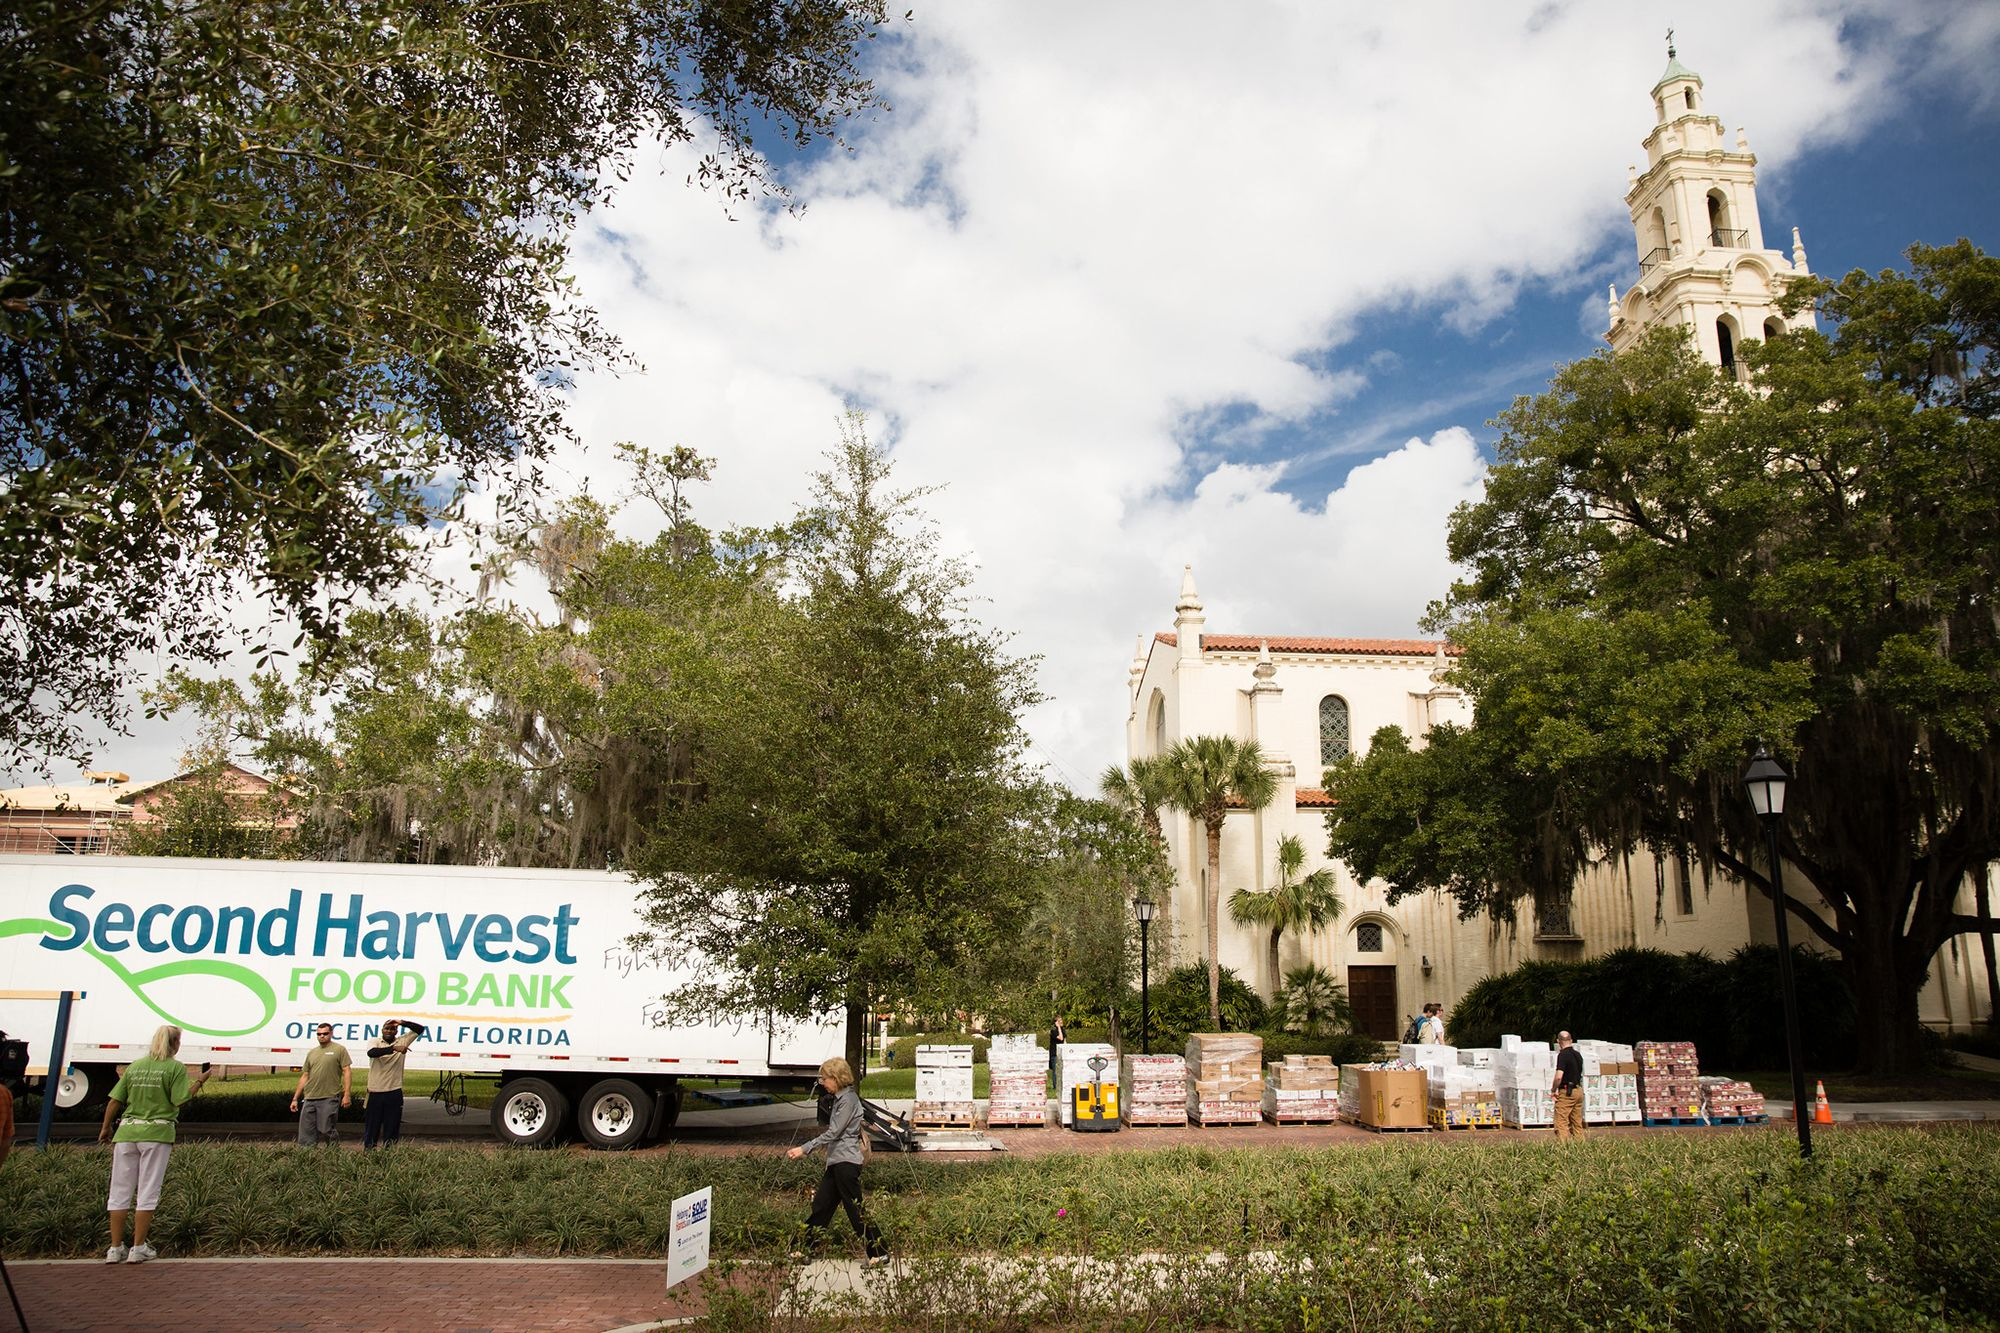 Second Harvest Food Bank parked on campus for a community event.